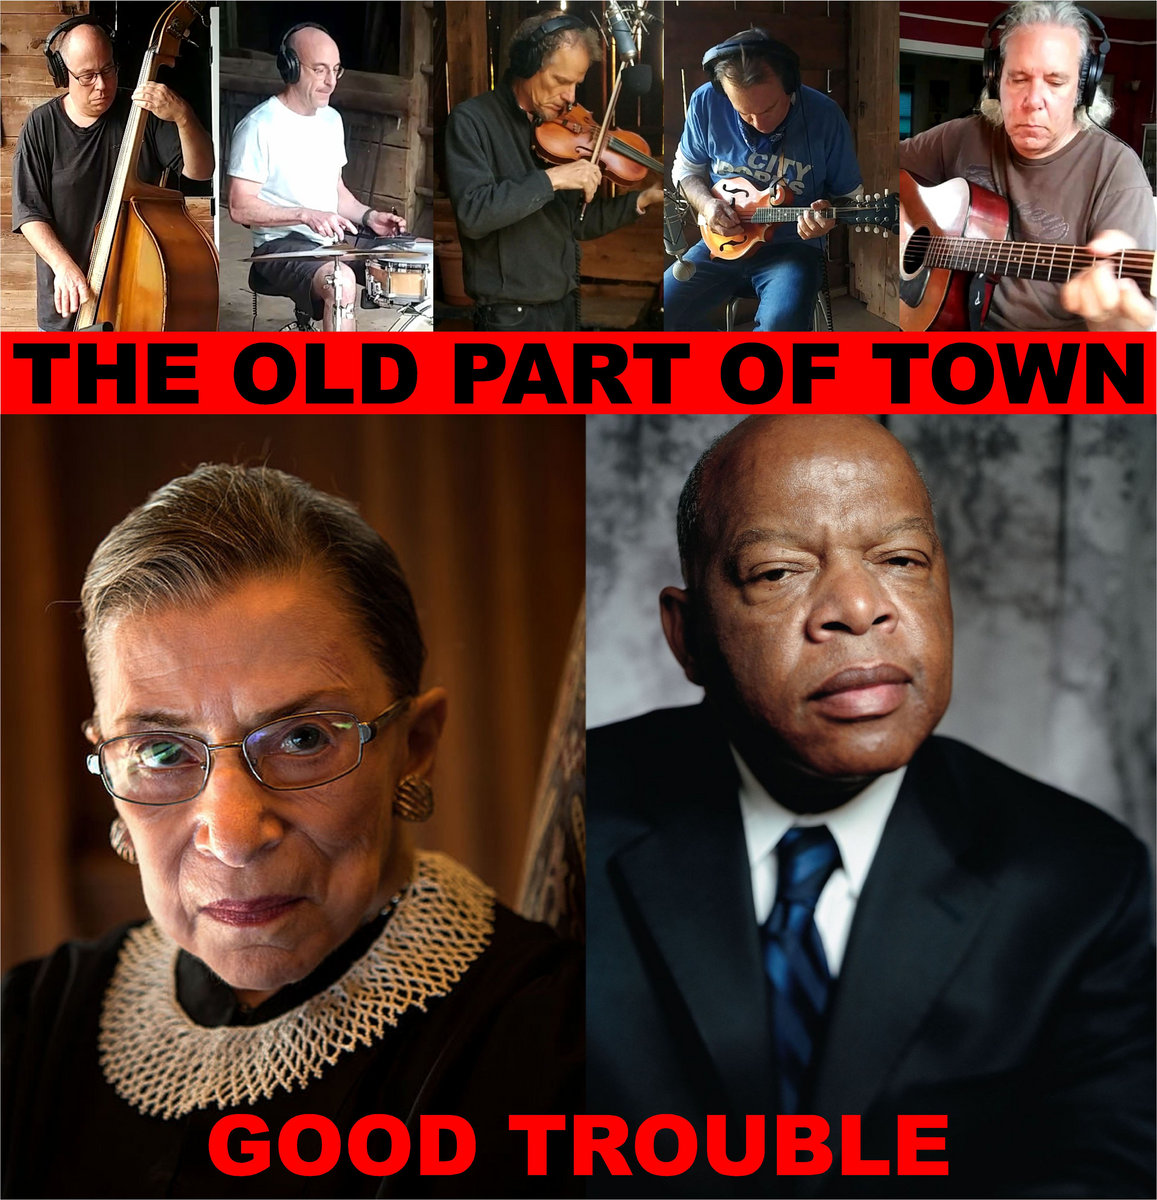 Good Trouble by The Old Part of Town